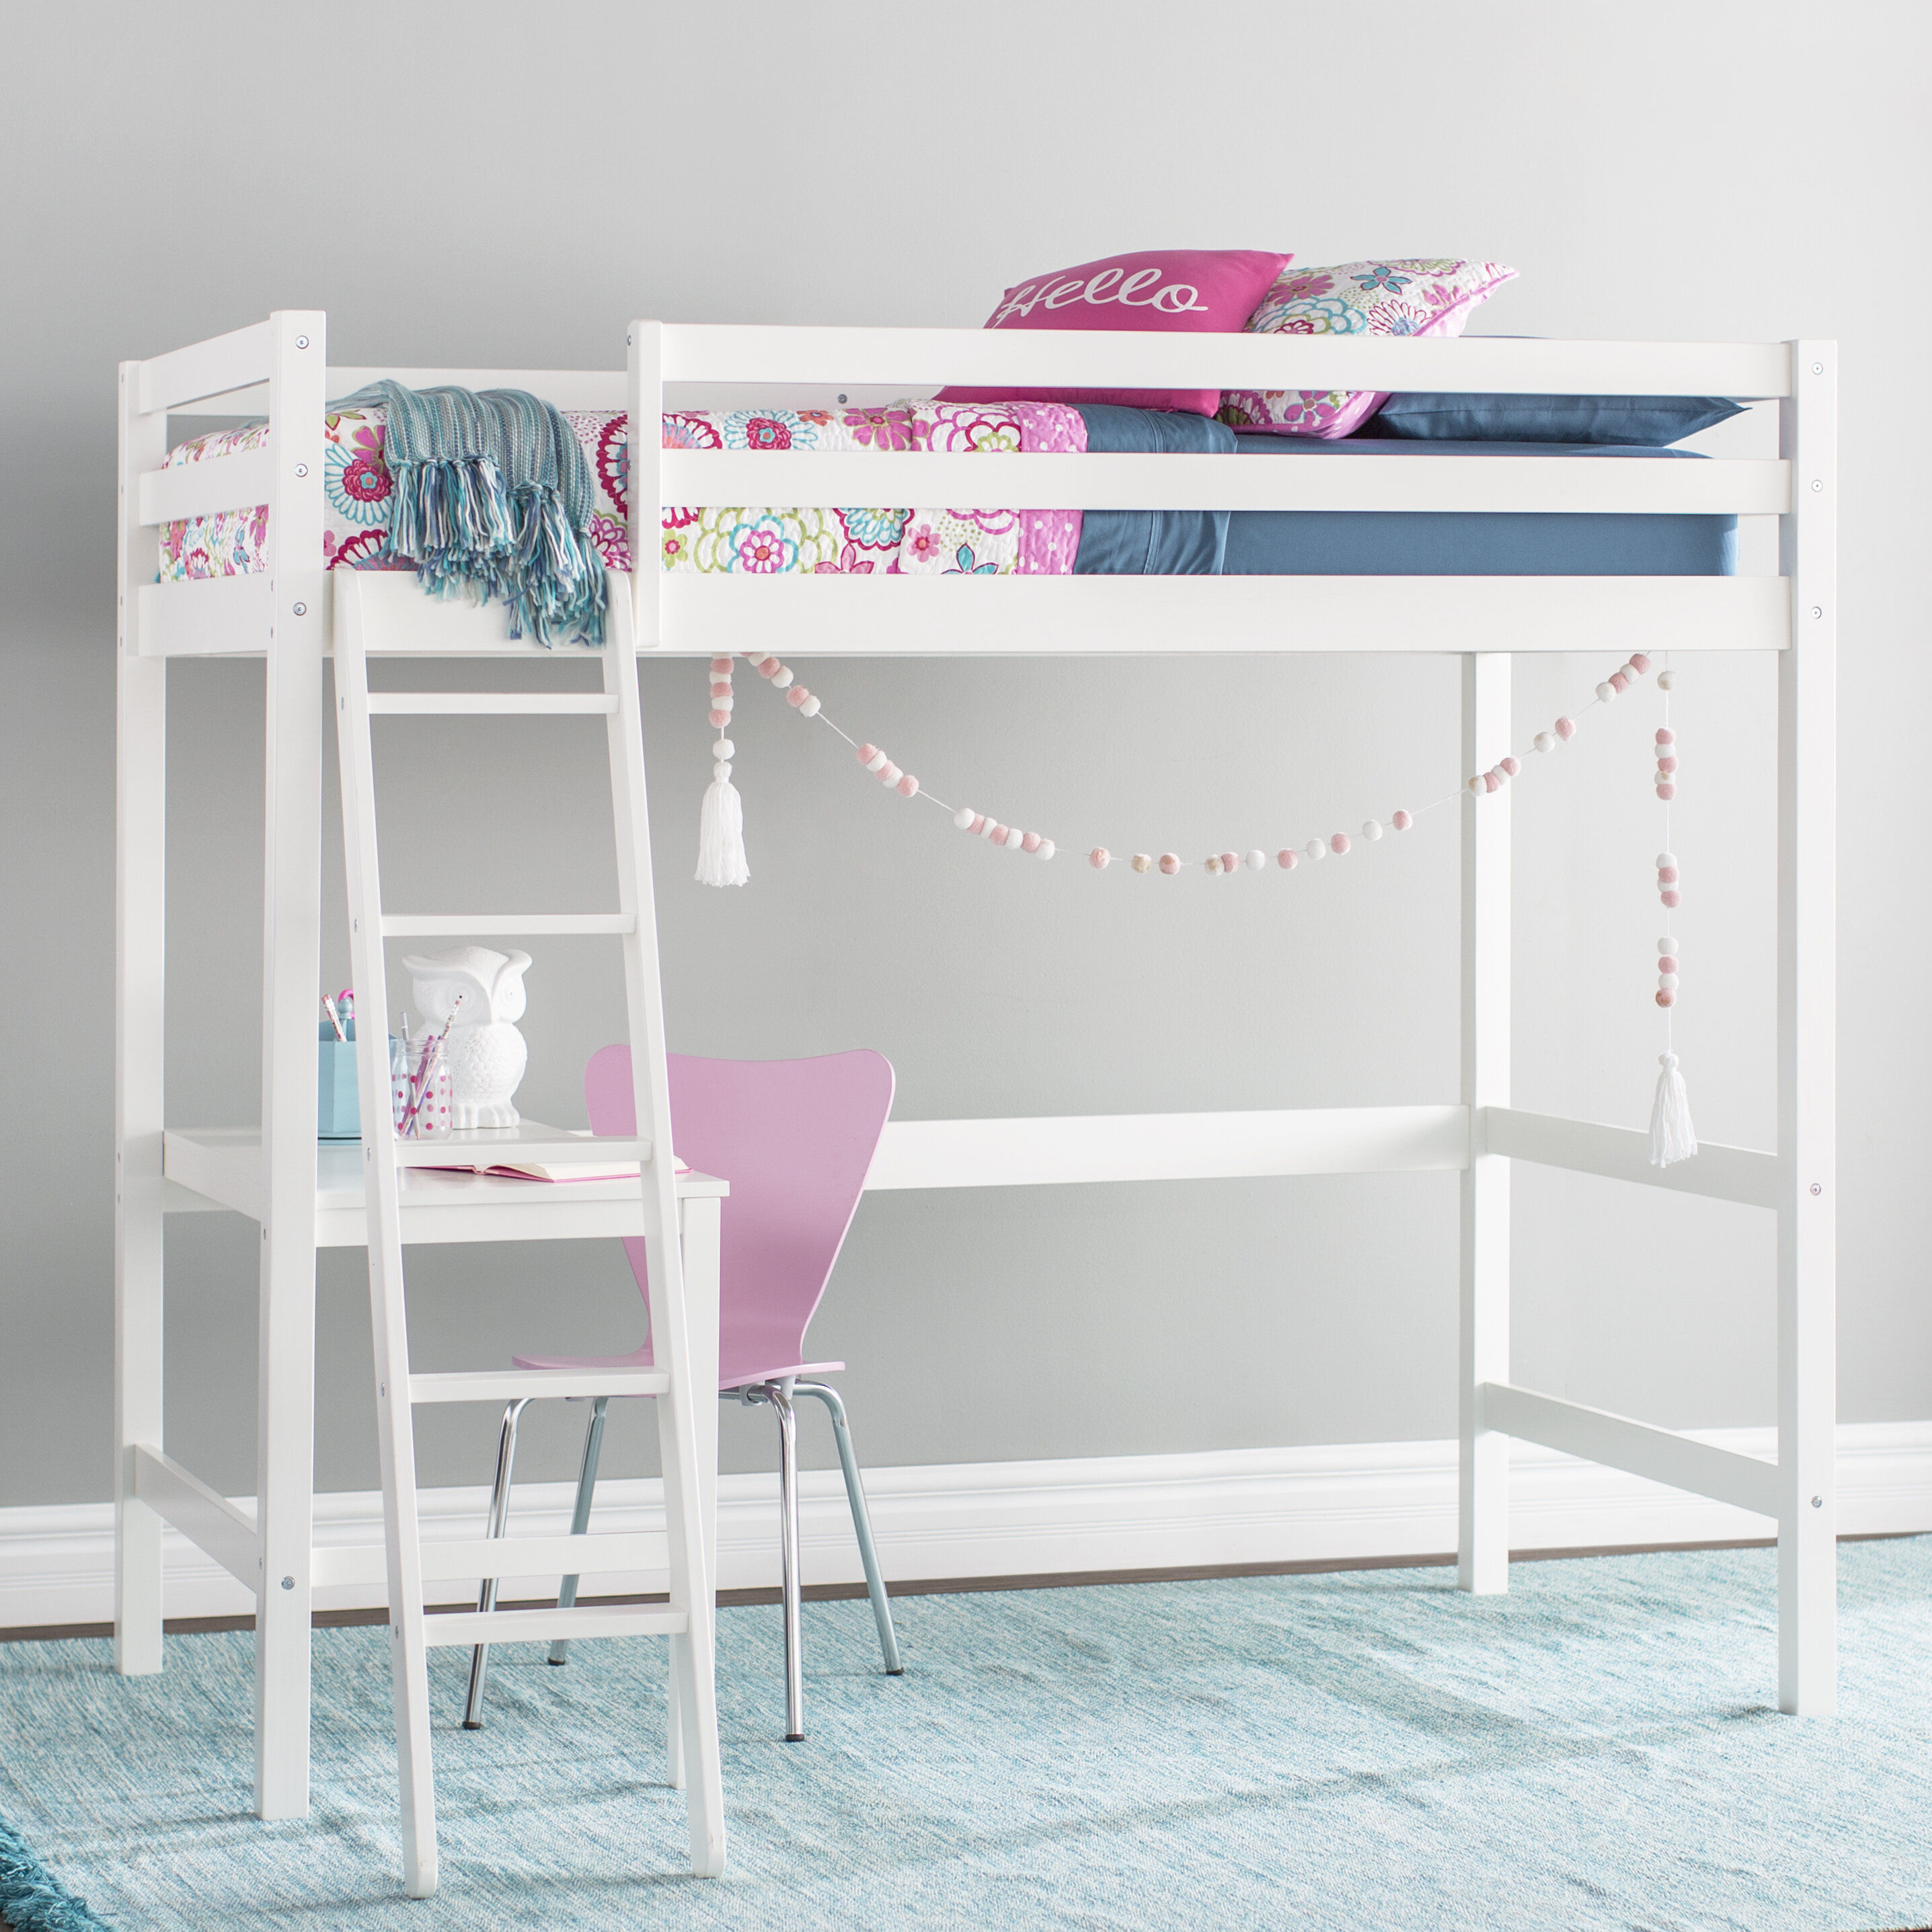 Kids Beds With Desks Free Shipping Over 35 Wayfair